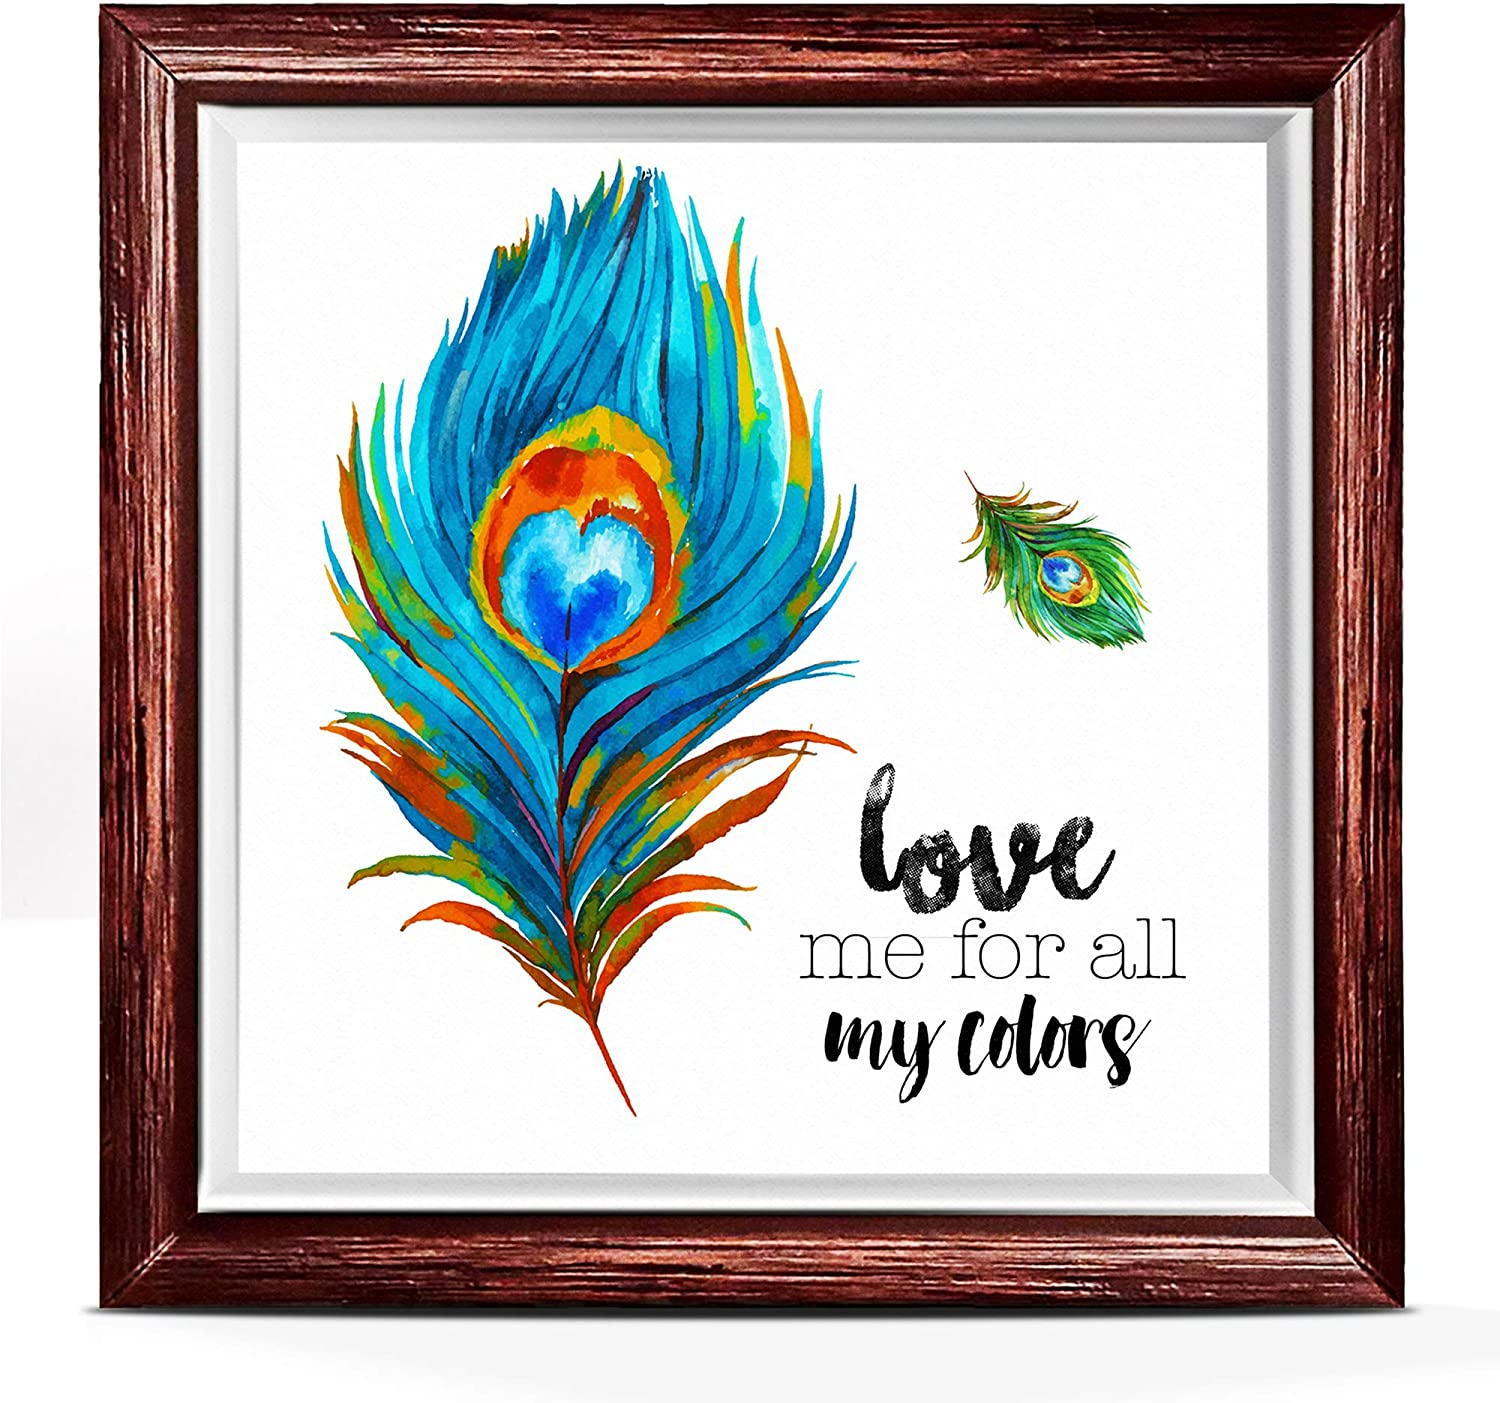 Gay Pride Gifts | Unique Ceramic for LGBTQ Community | Great for Home Decoration | A Wall Decor Ceramic with Inspirational Quote | Ideal for Any Room Decoration